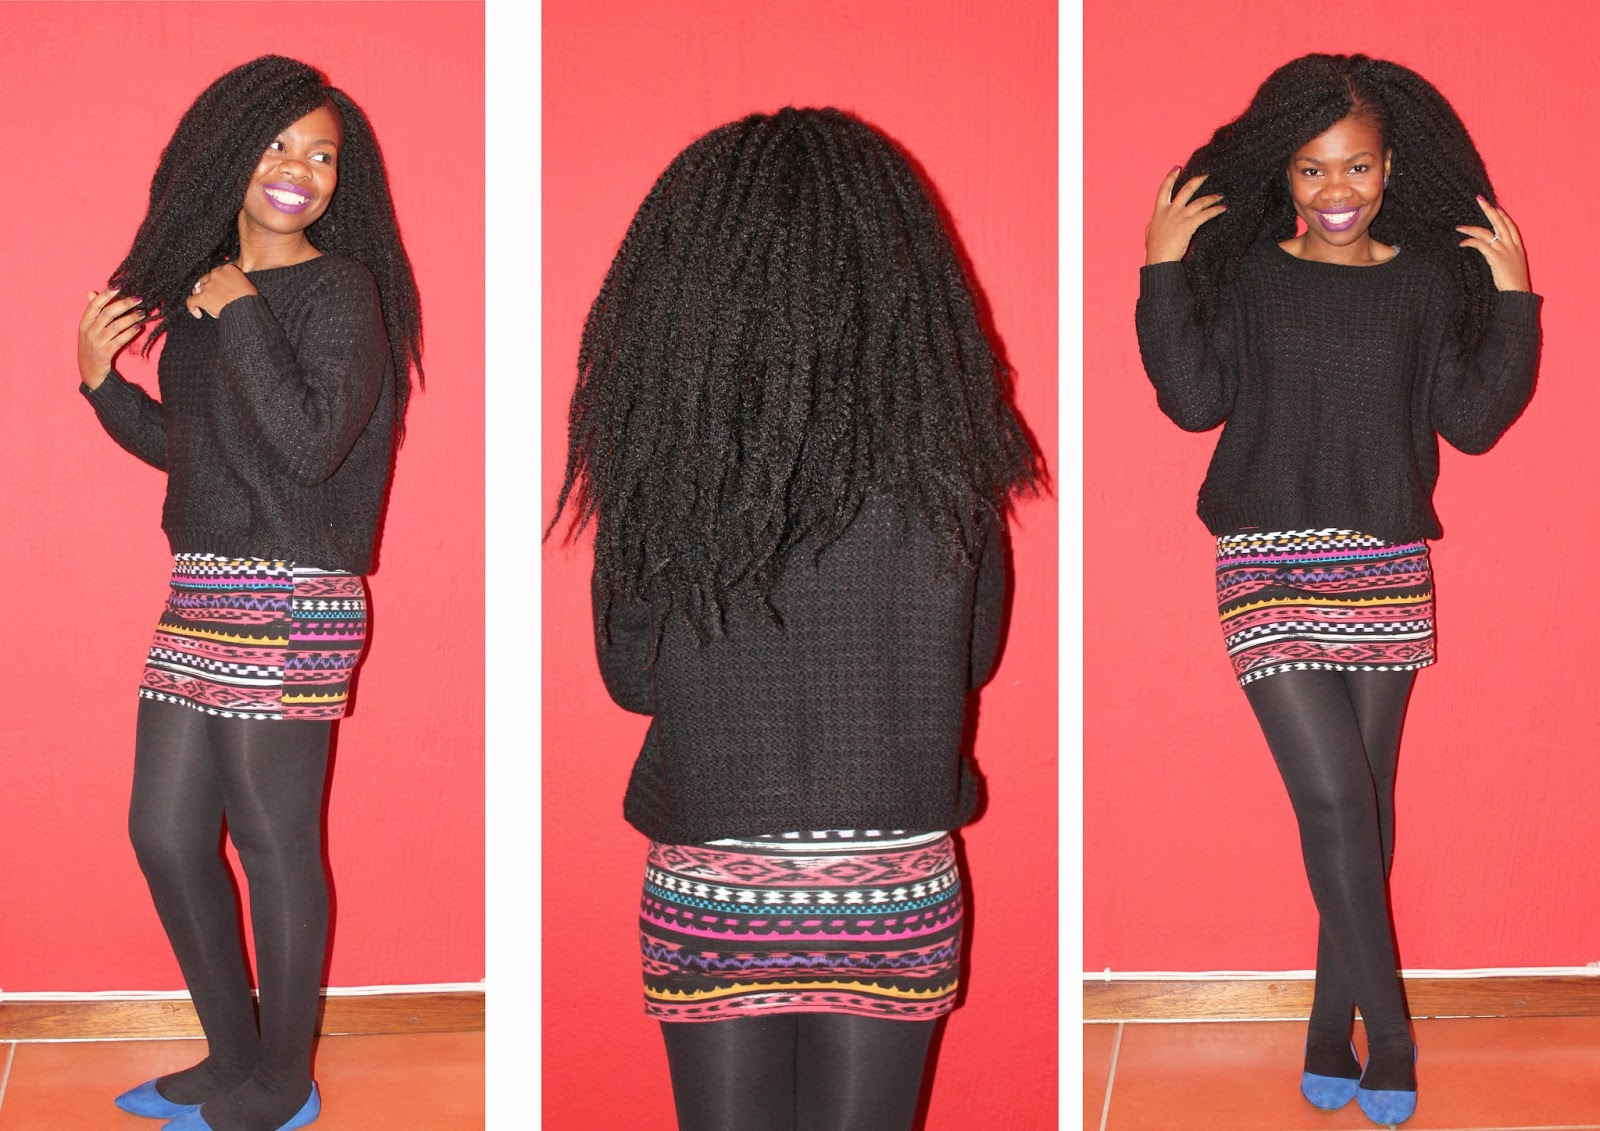 2014 protective style 3 afro marley weave aisha life 2014 protective style 3 afro marley weave pmusecretfo Choice Image